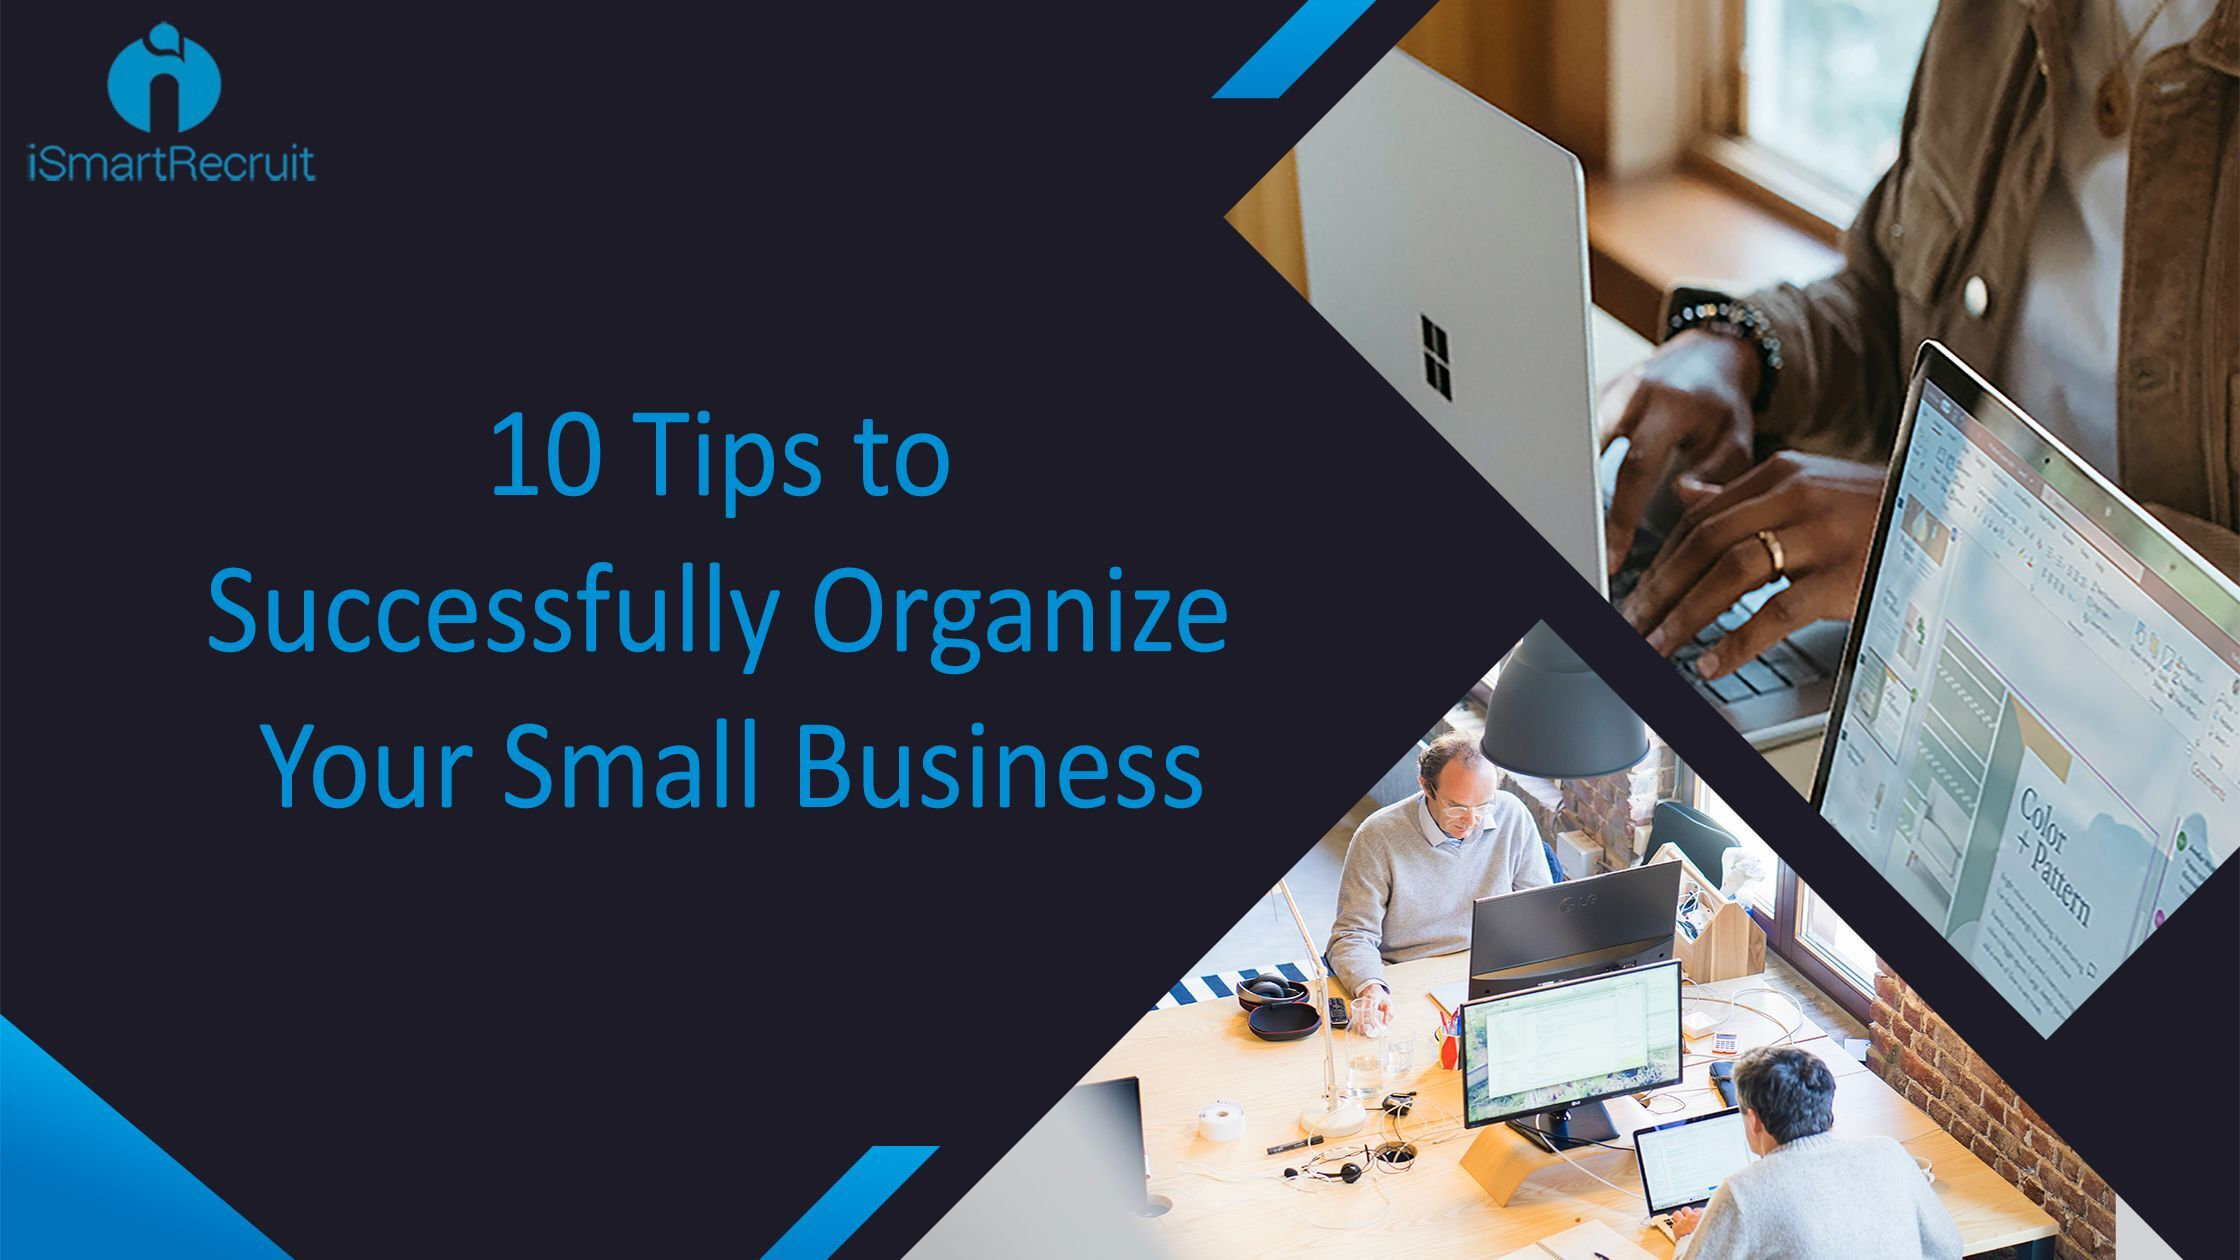 10 Tips to Successfully Organize Your Small Business